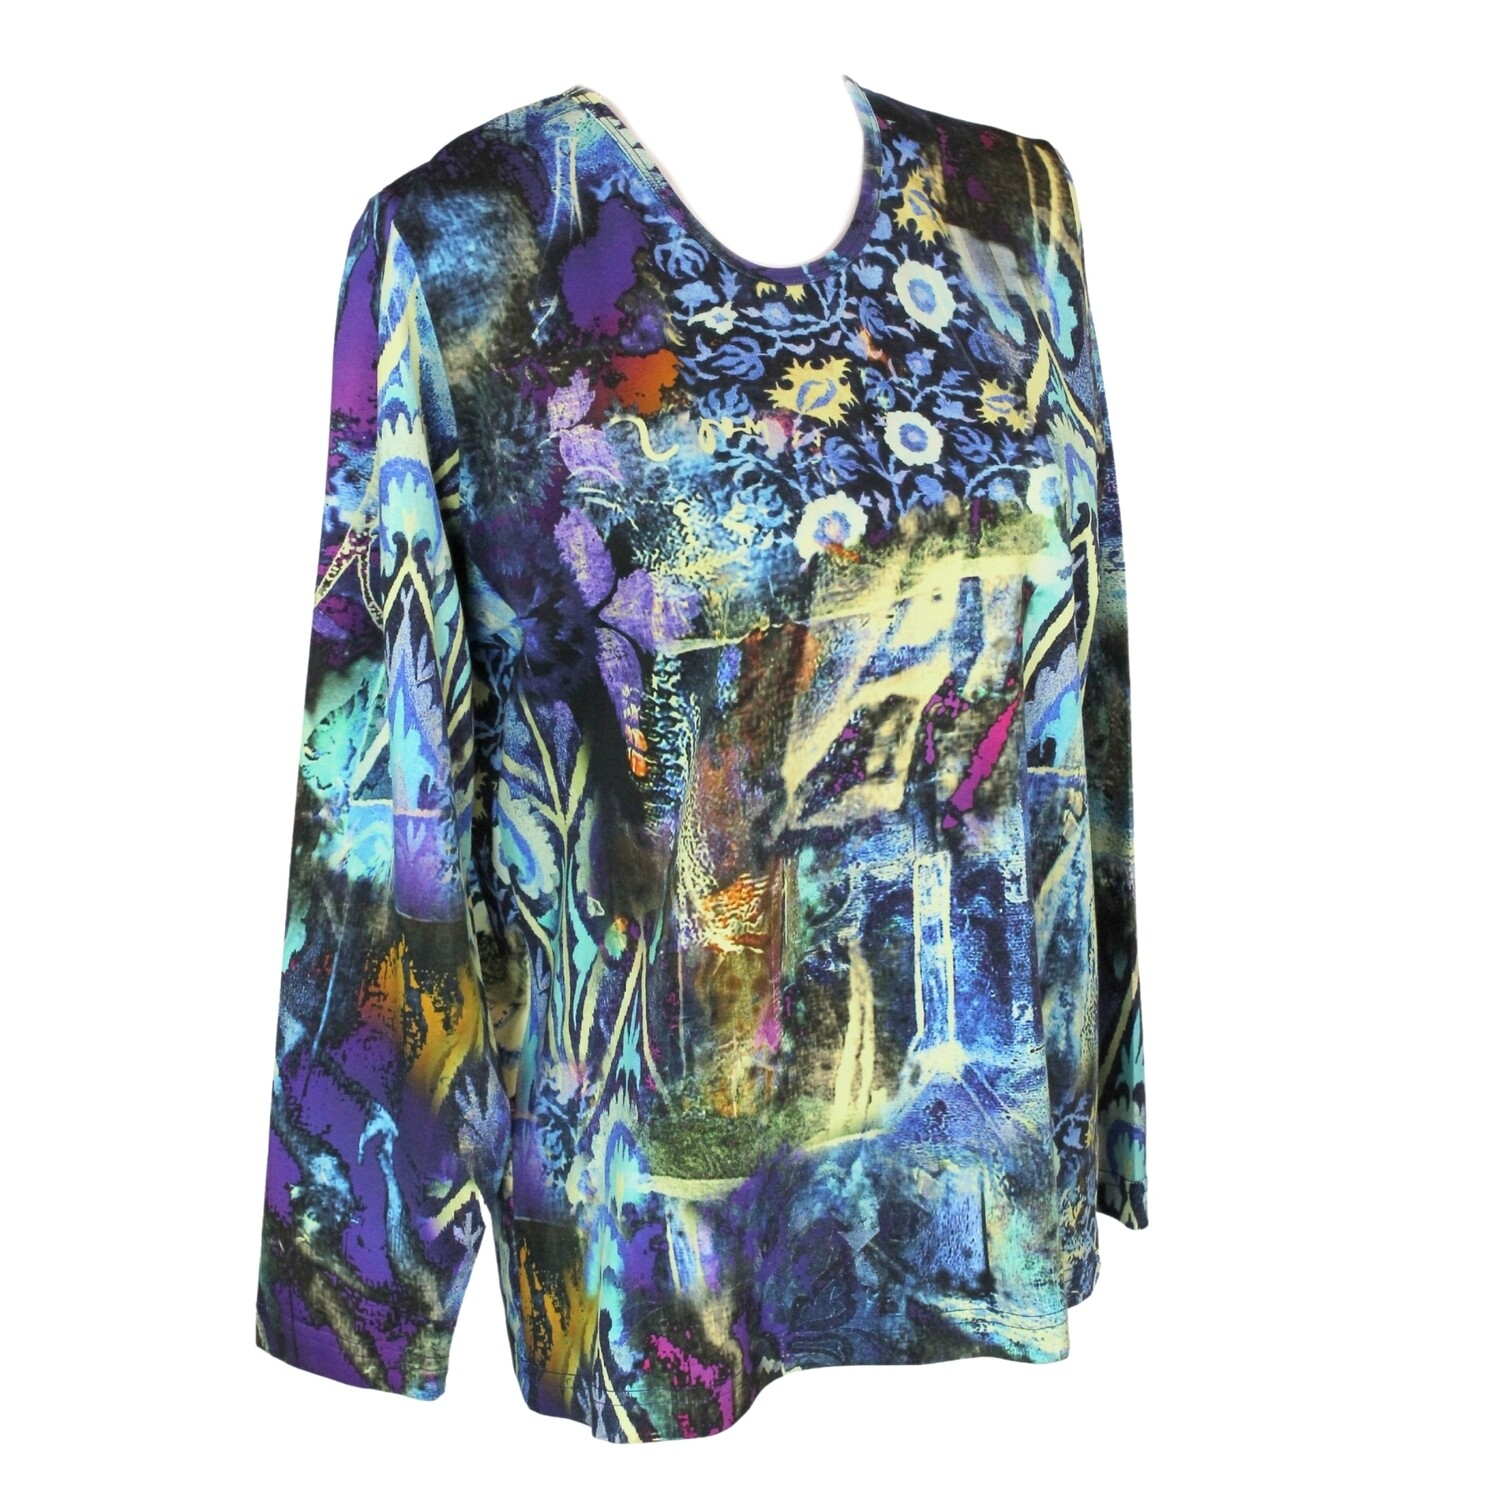 Cotton Stretch Long Sleeve Print Top